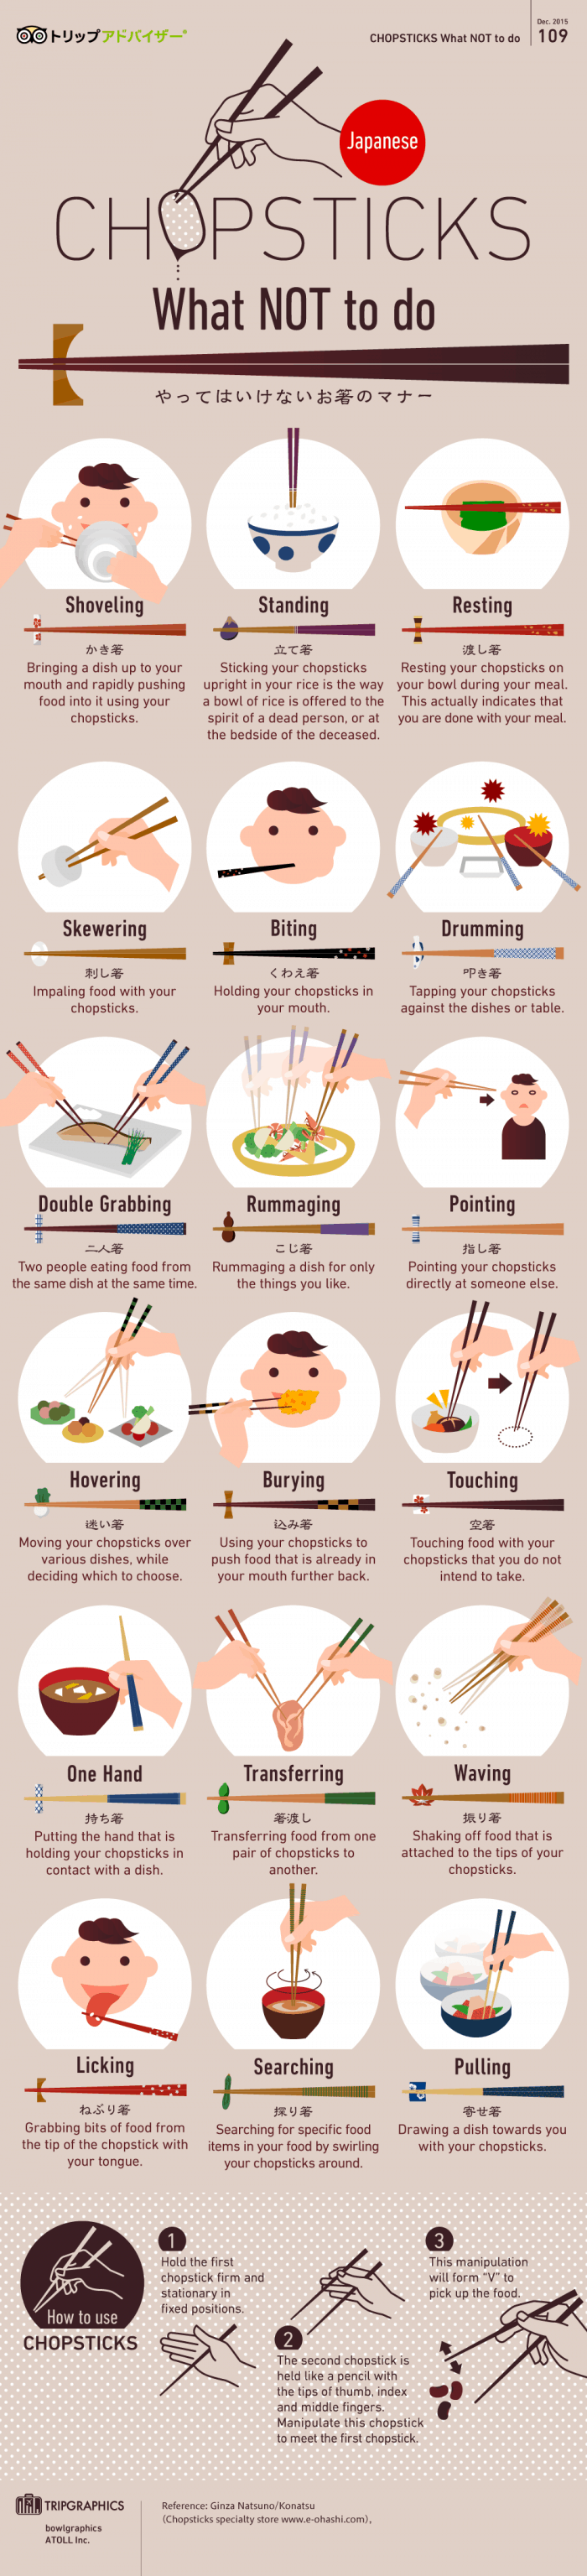 chopsticks guide, how to use chopsticks, etiquette, japanese etiquette, how to eat sushi